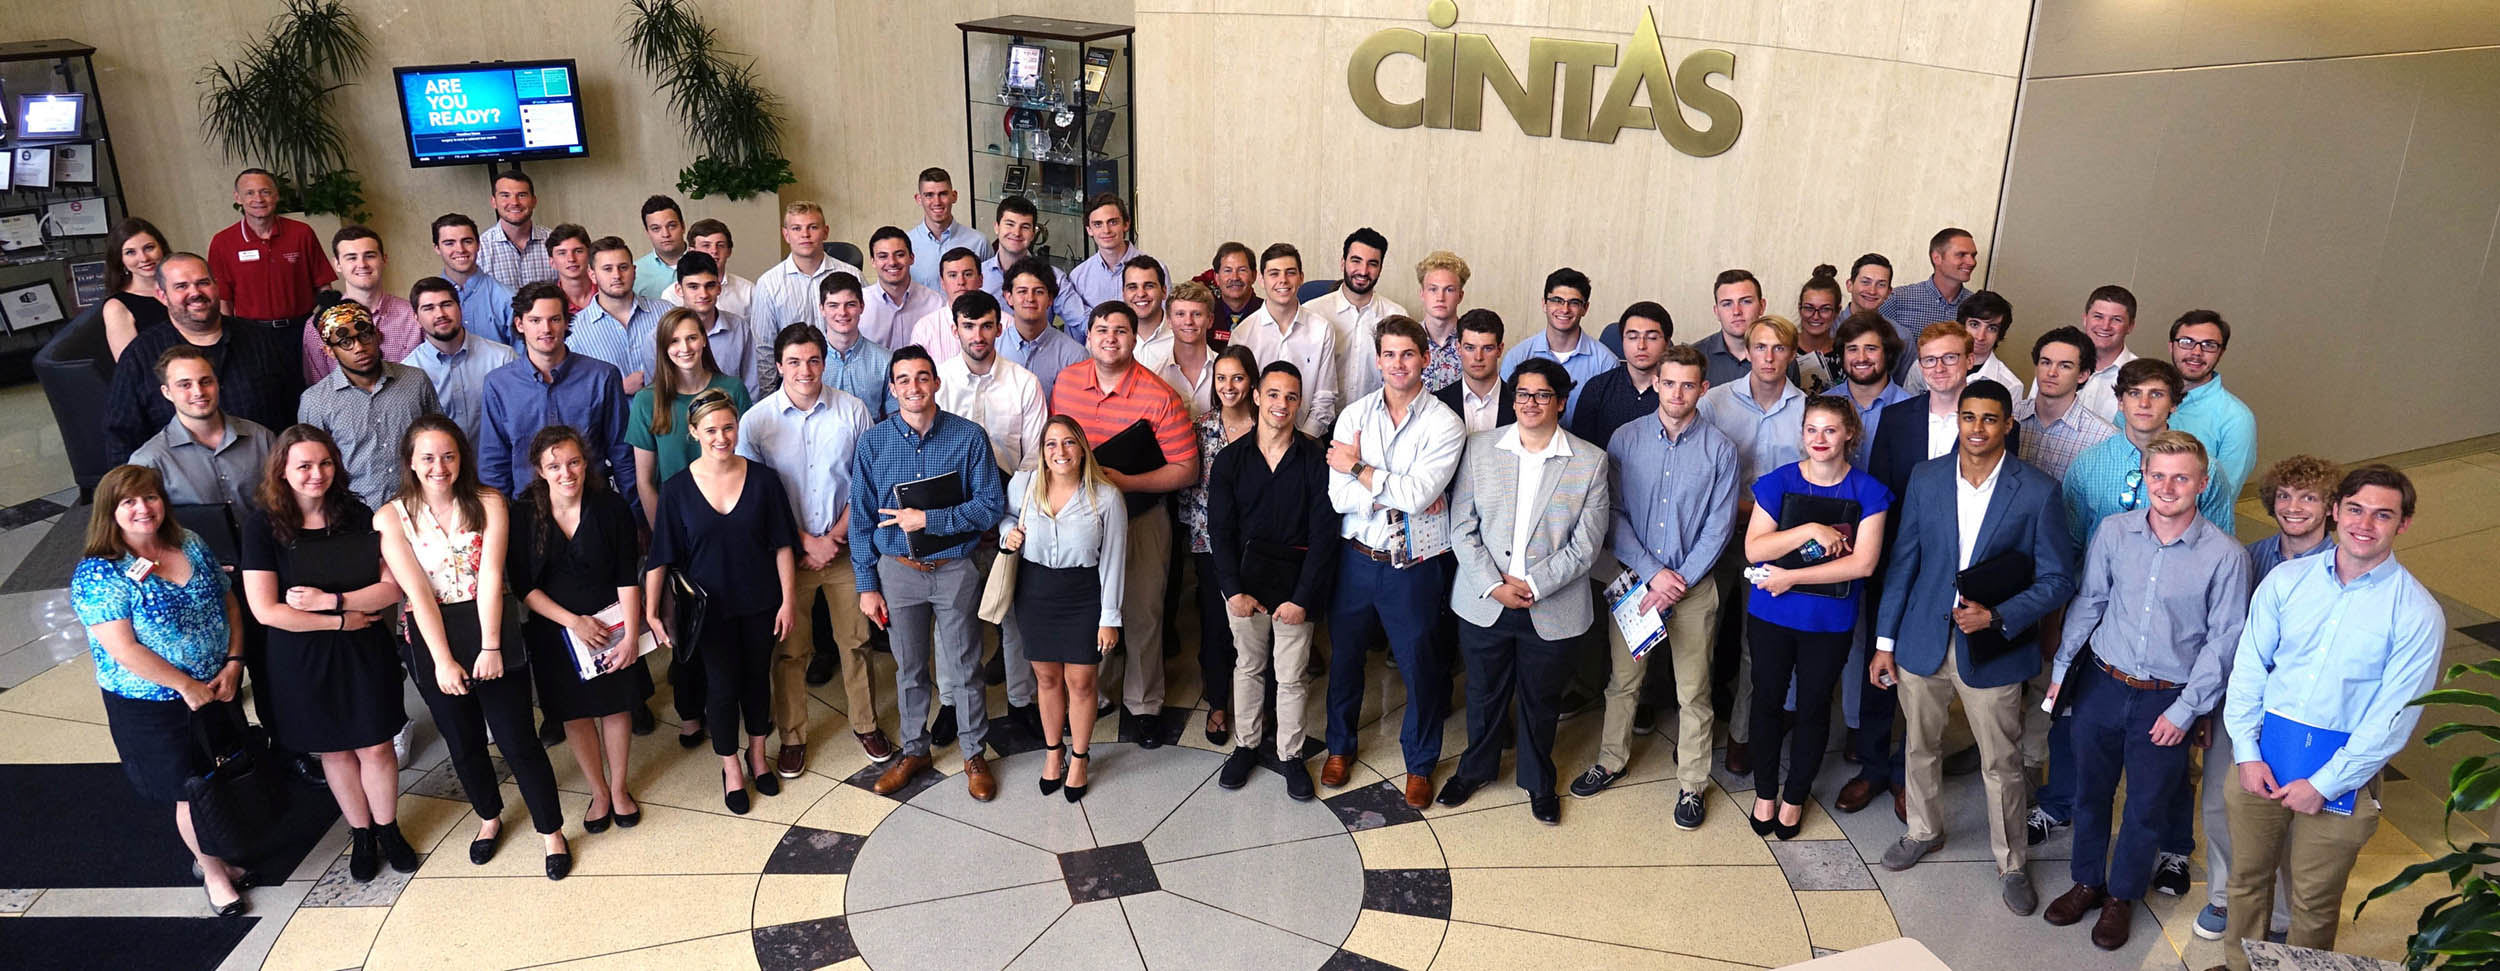 Group photo of Miami PRIME participants in Cintas' lobby